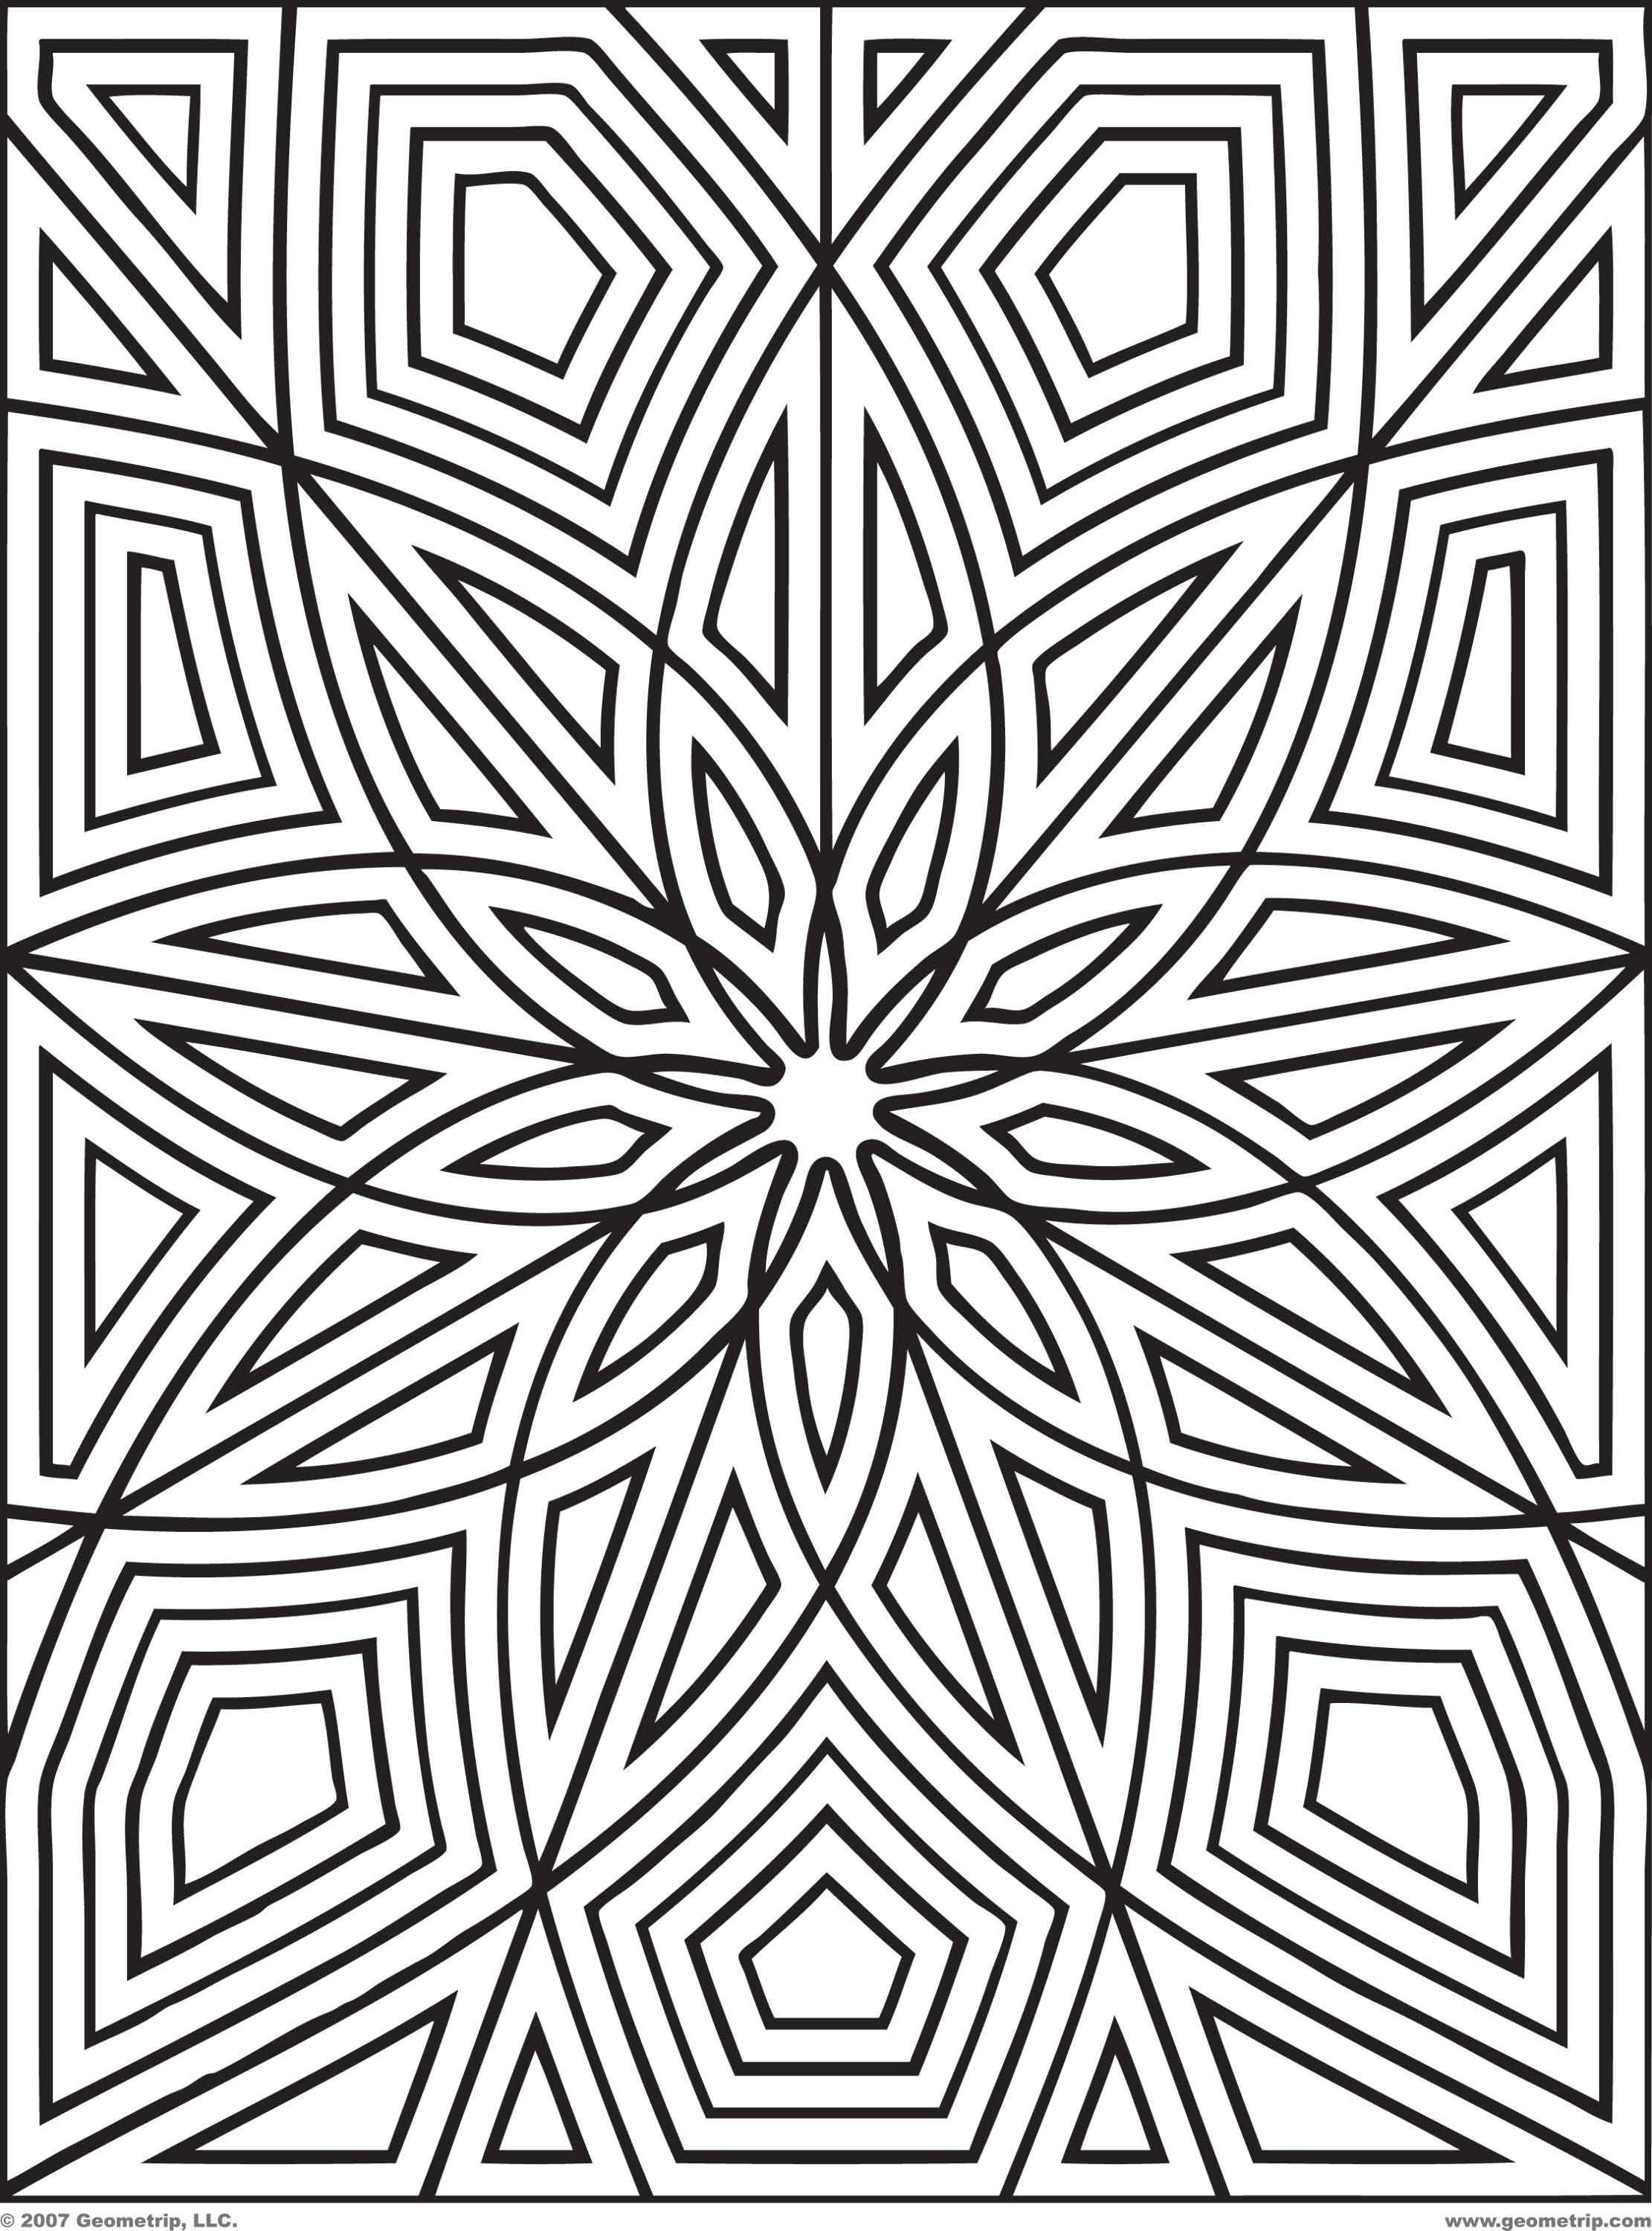 printable geometric patterns designs print get your free printable mandala coloring pages here - Coloring Pages With Designs